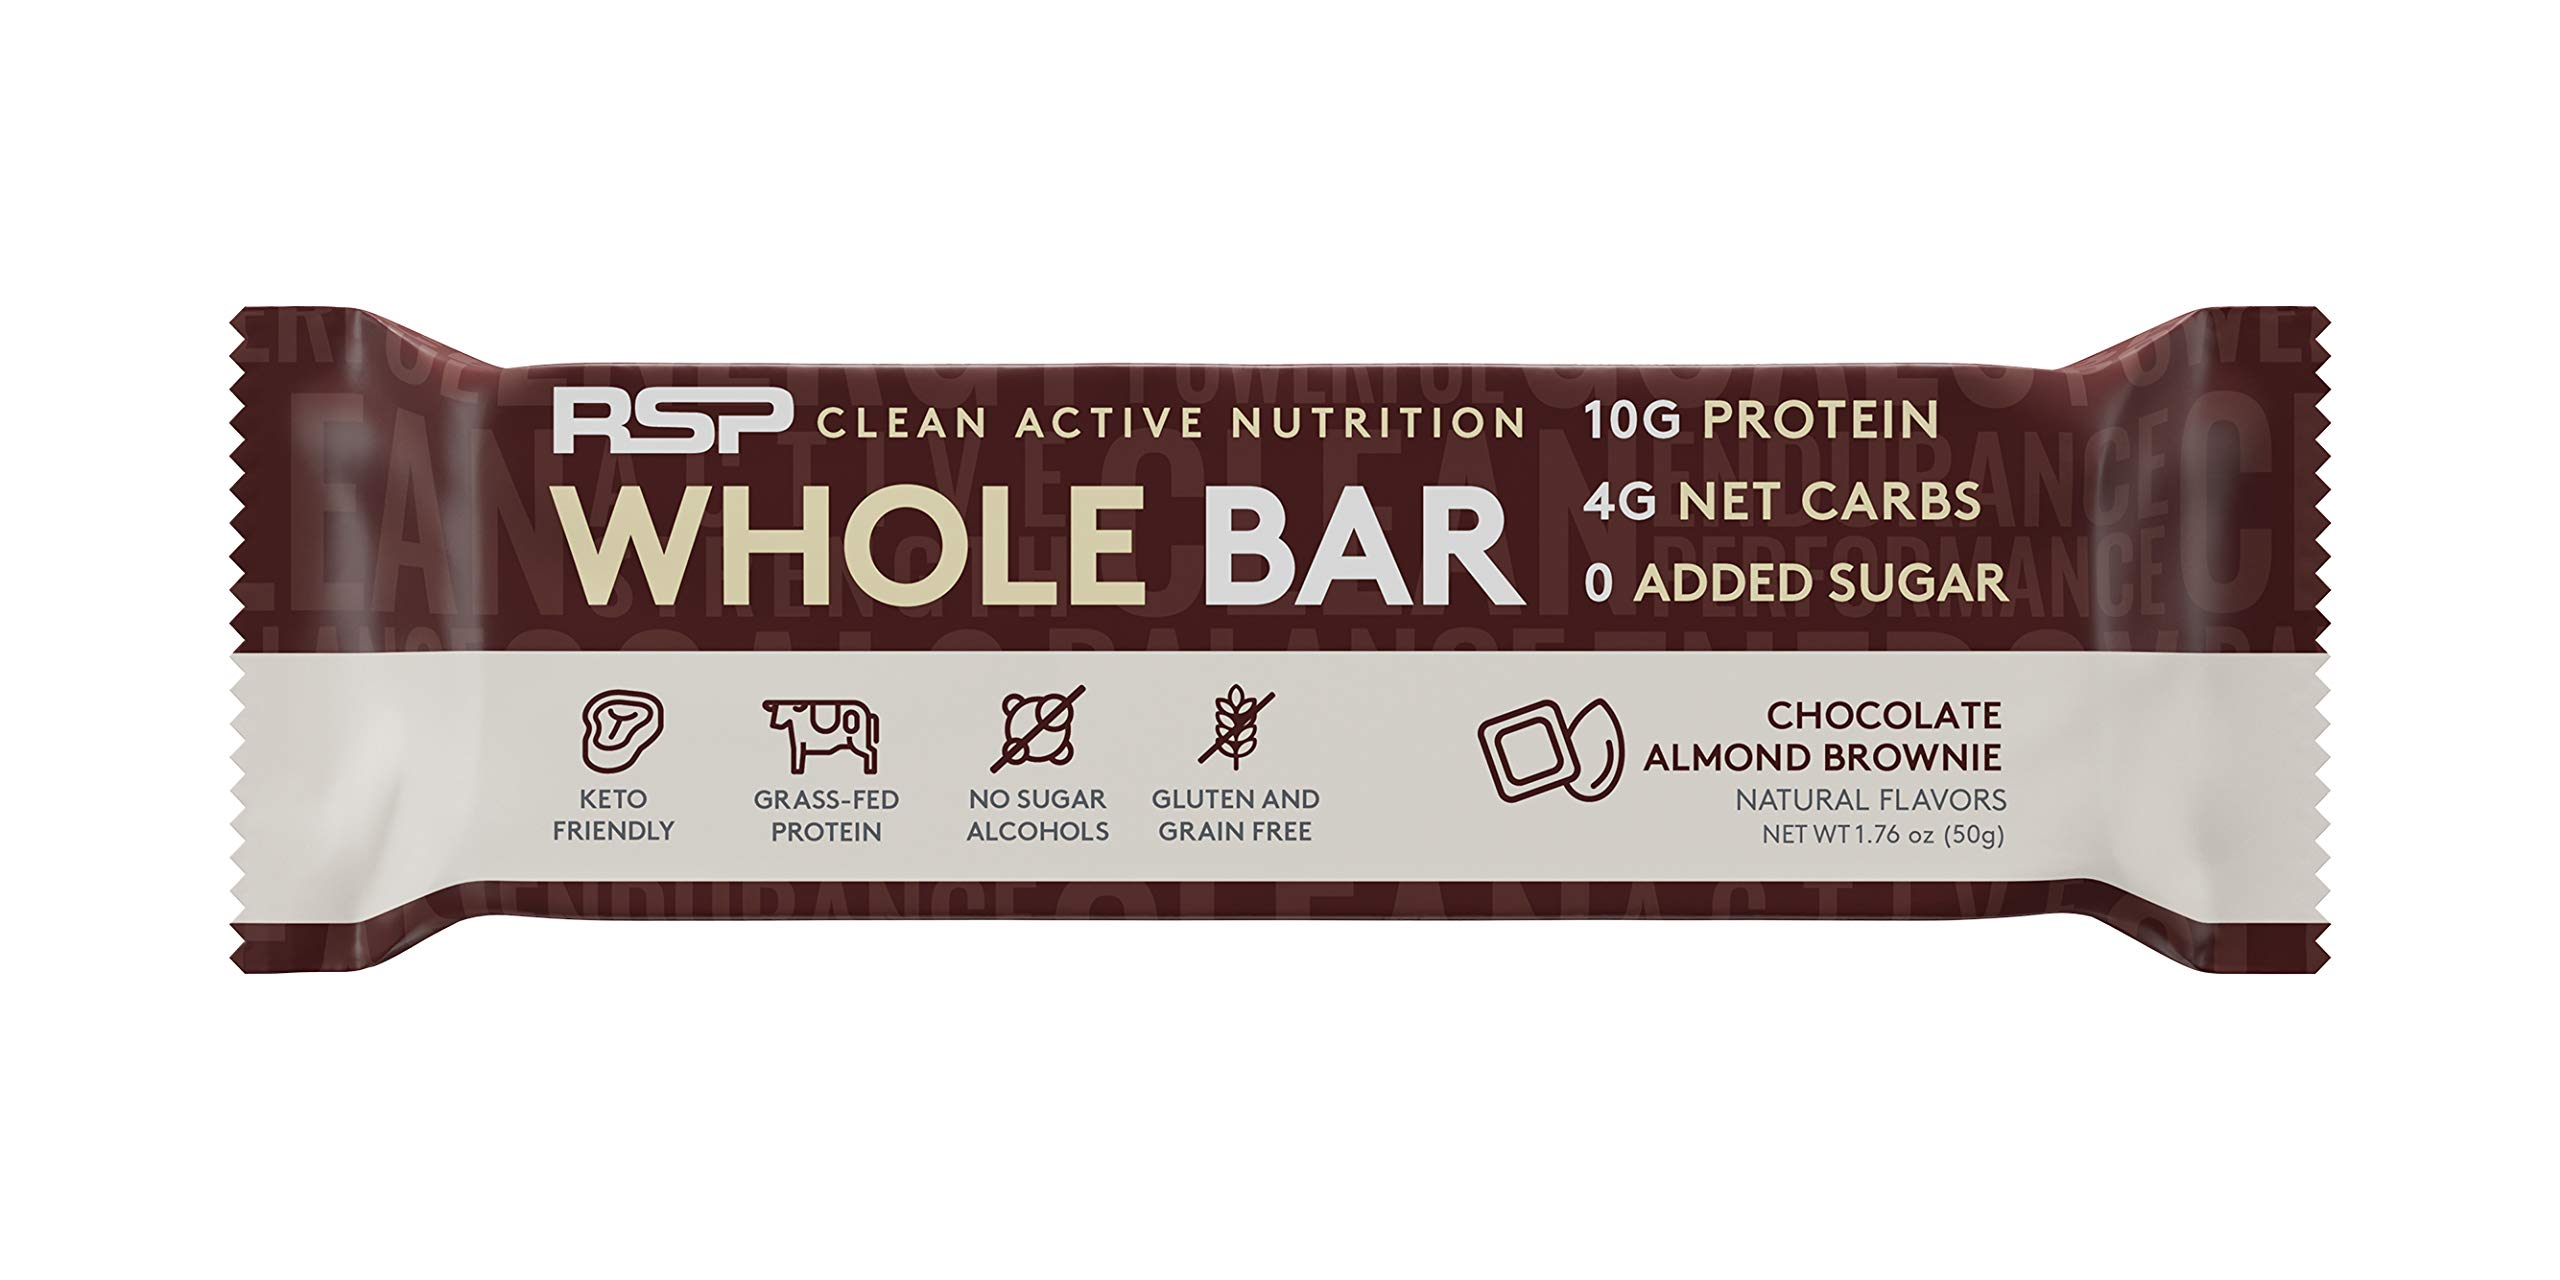 RSP Whole Bar - Low Carb Keto Protein Bar + Quality Fats, 10g Grass Fed Protein, 4g Net Carbs, 19g Fat, Zero Added Sugar, Perfect Keto Snack, Gluten Free, 12 Pack (Chocolate Almond Brownie)